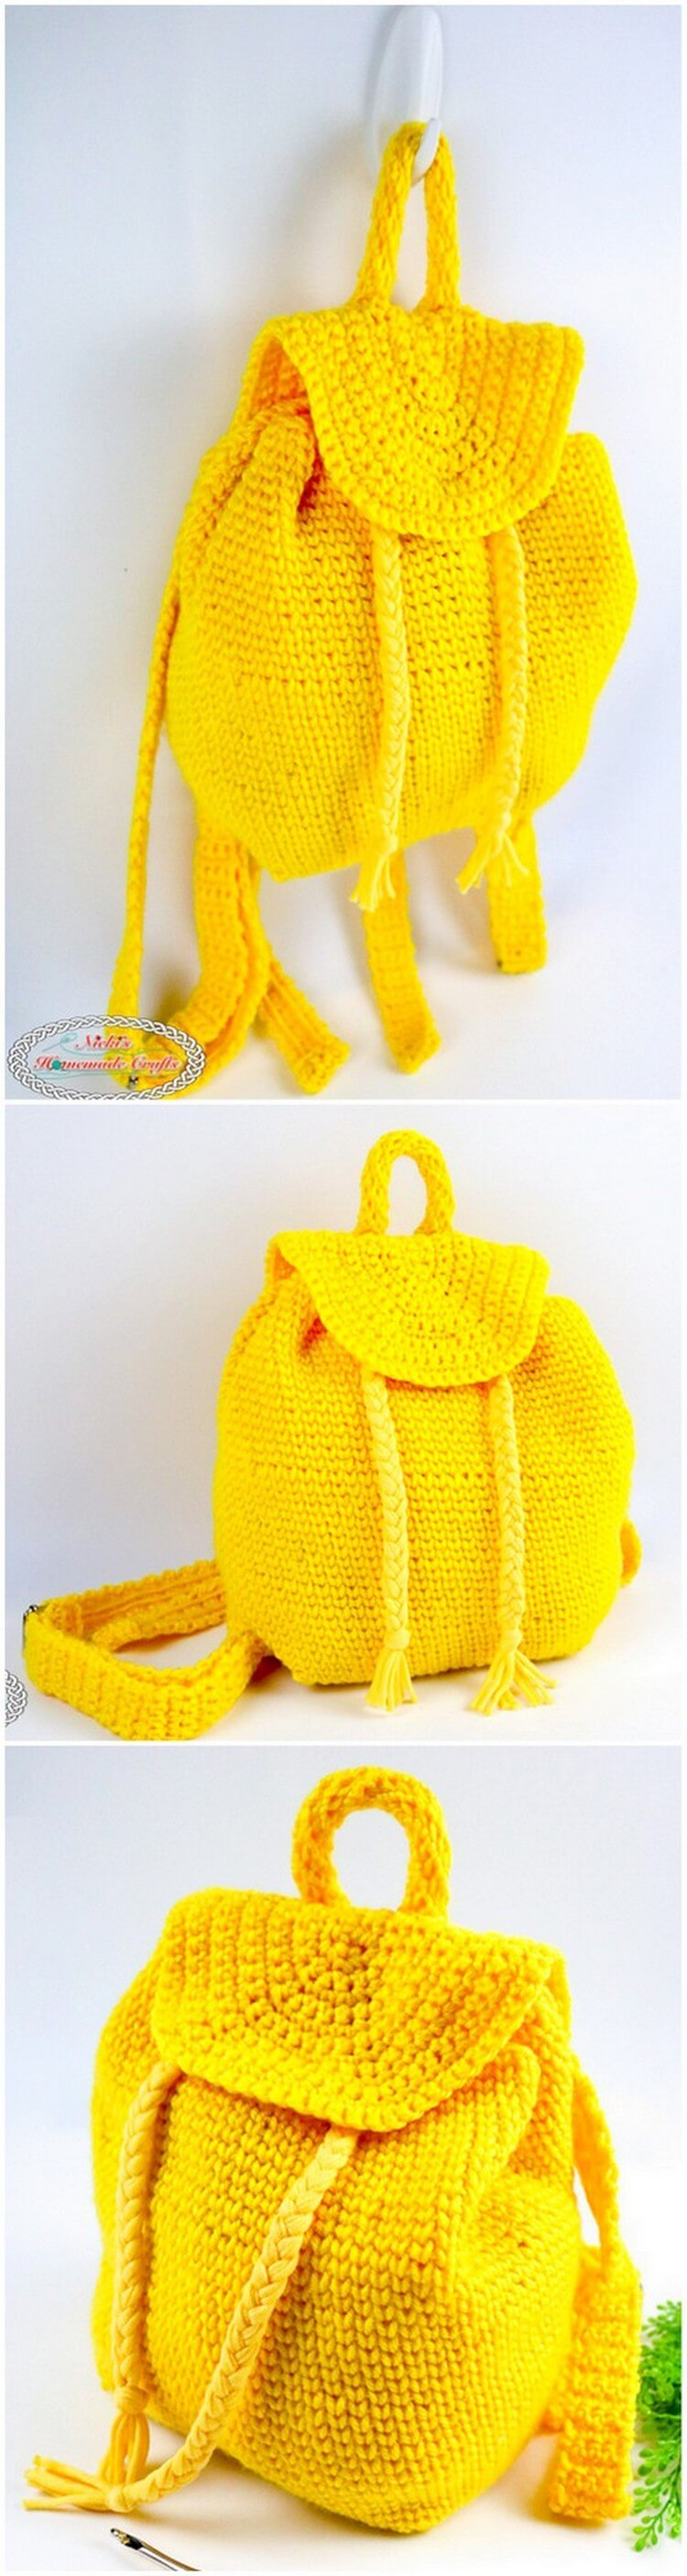 Crochet Backpack Pattern (15)